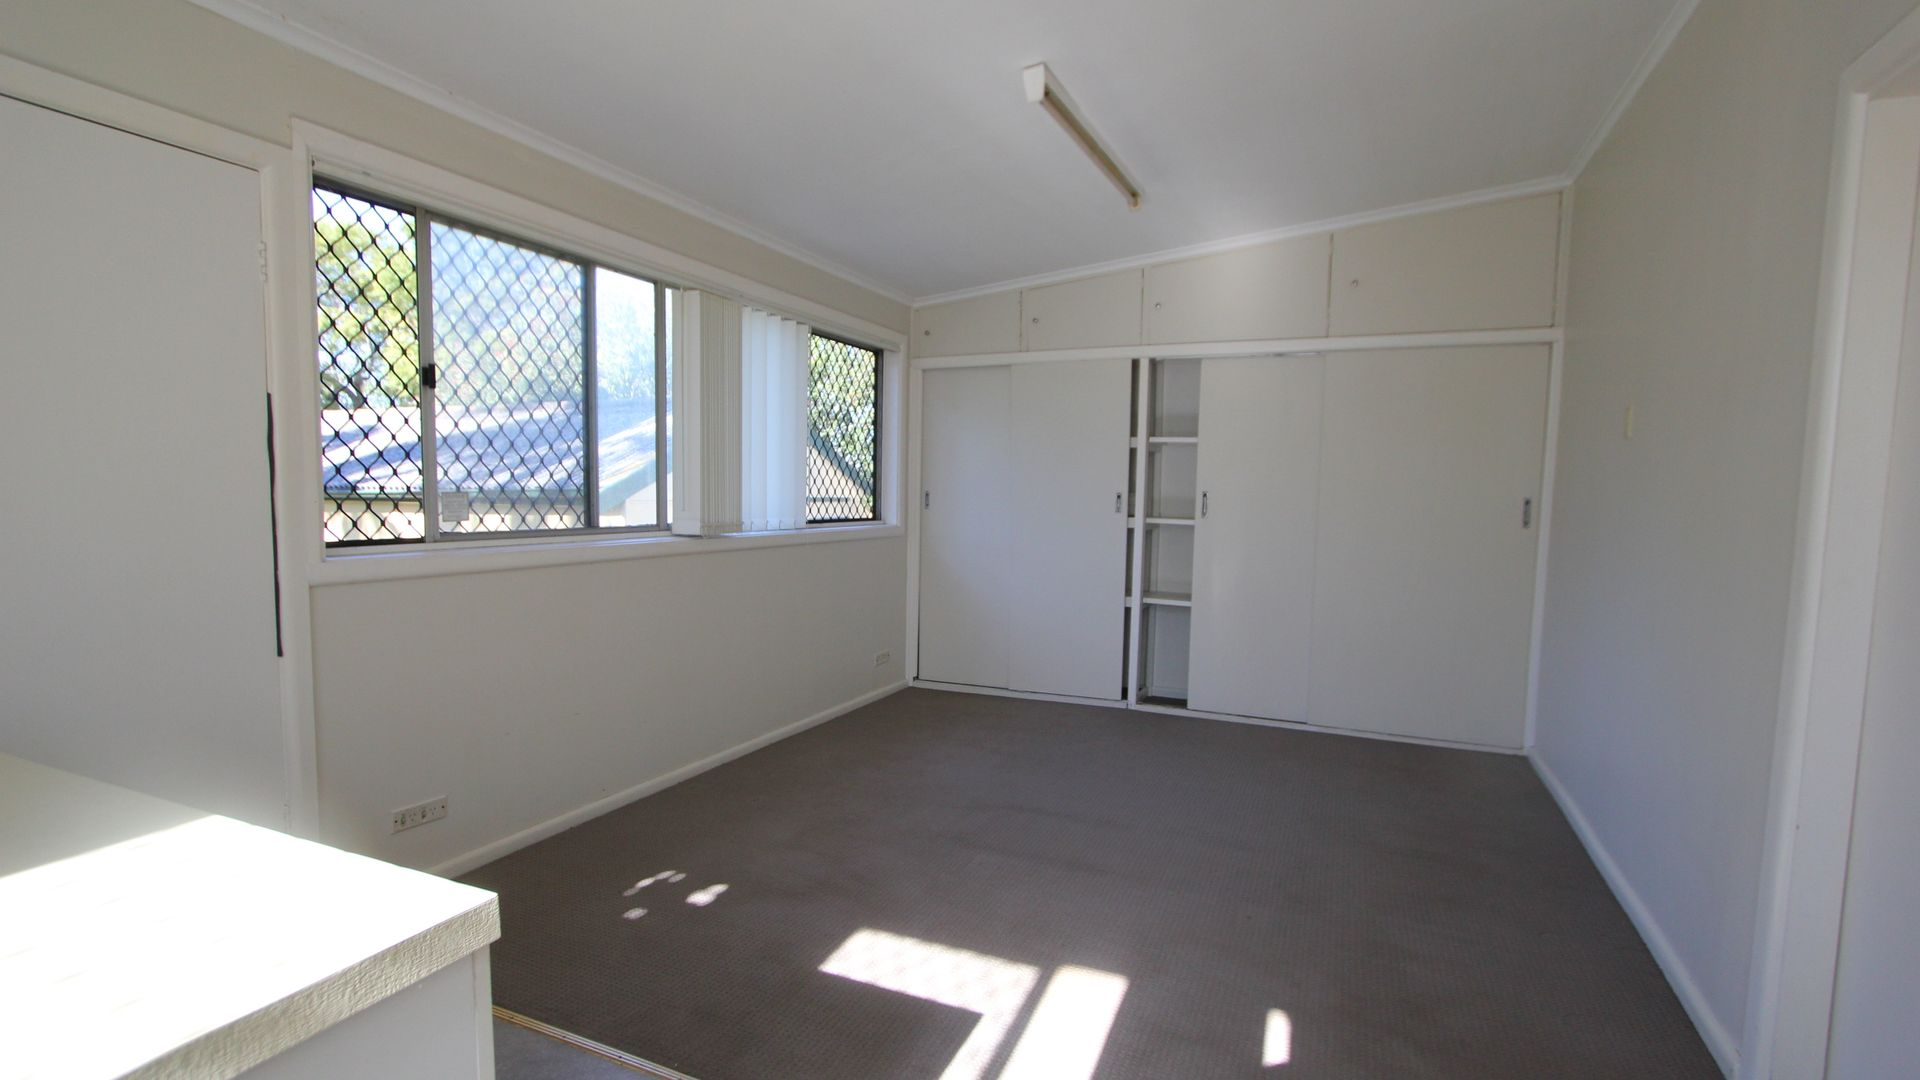 41 Walter St, Mortdale NSW 2223, Image 1